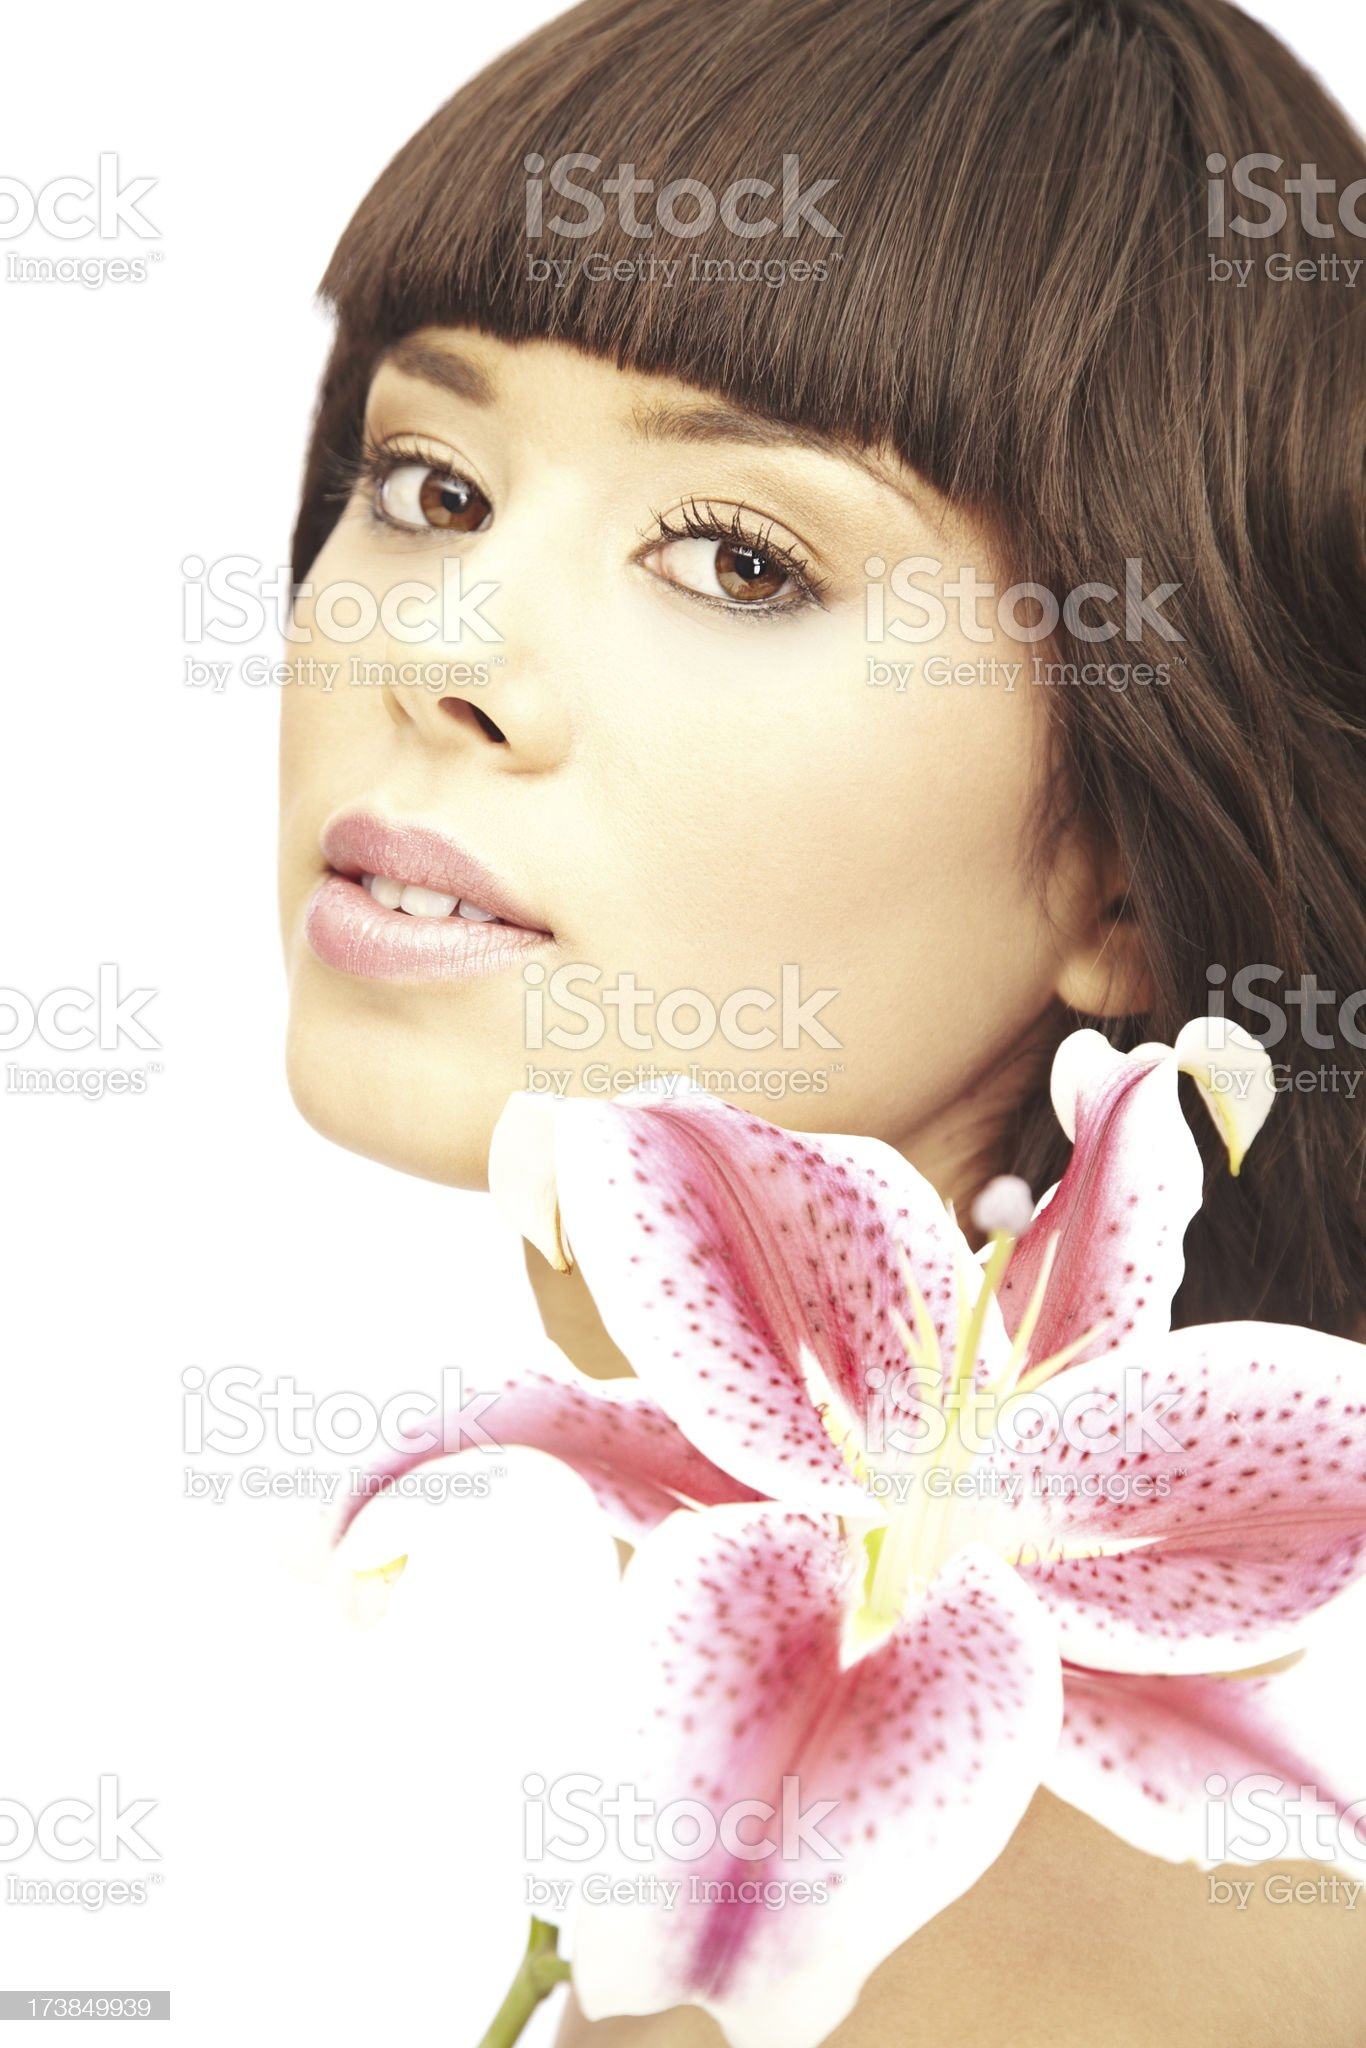 Gorgeous Brunette Woman with Stargazer Lily. Isolated. royalty-free stock photo